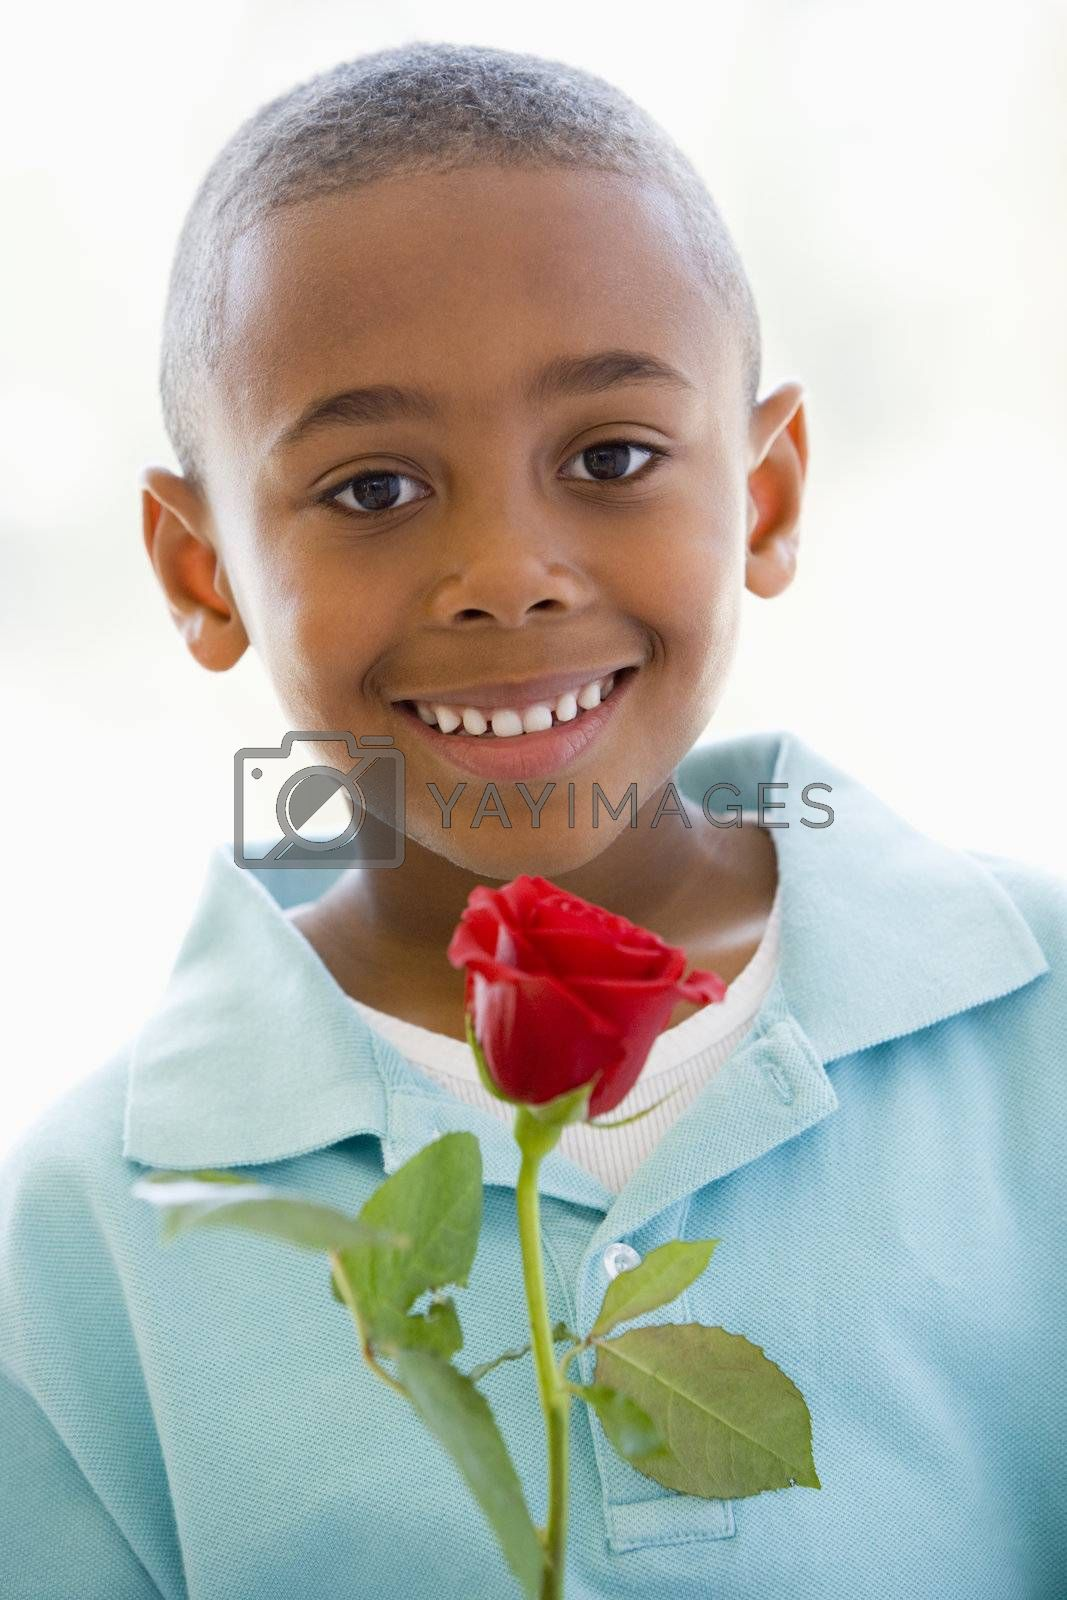 Young boy holding rose smiling